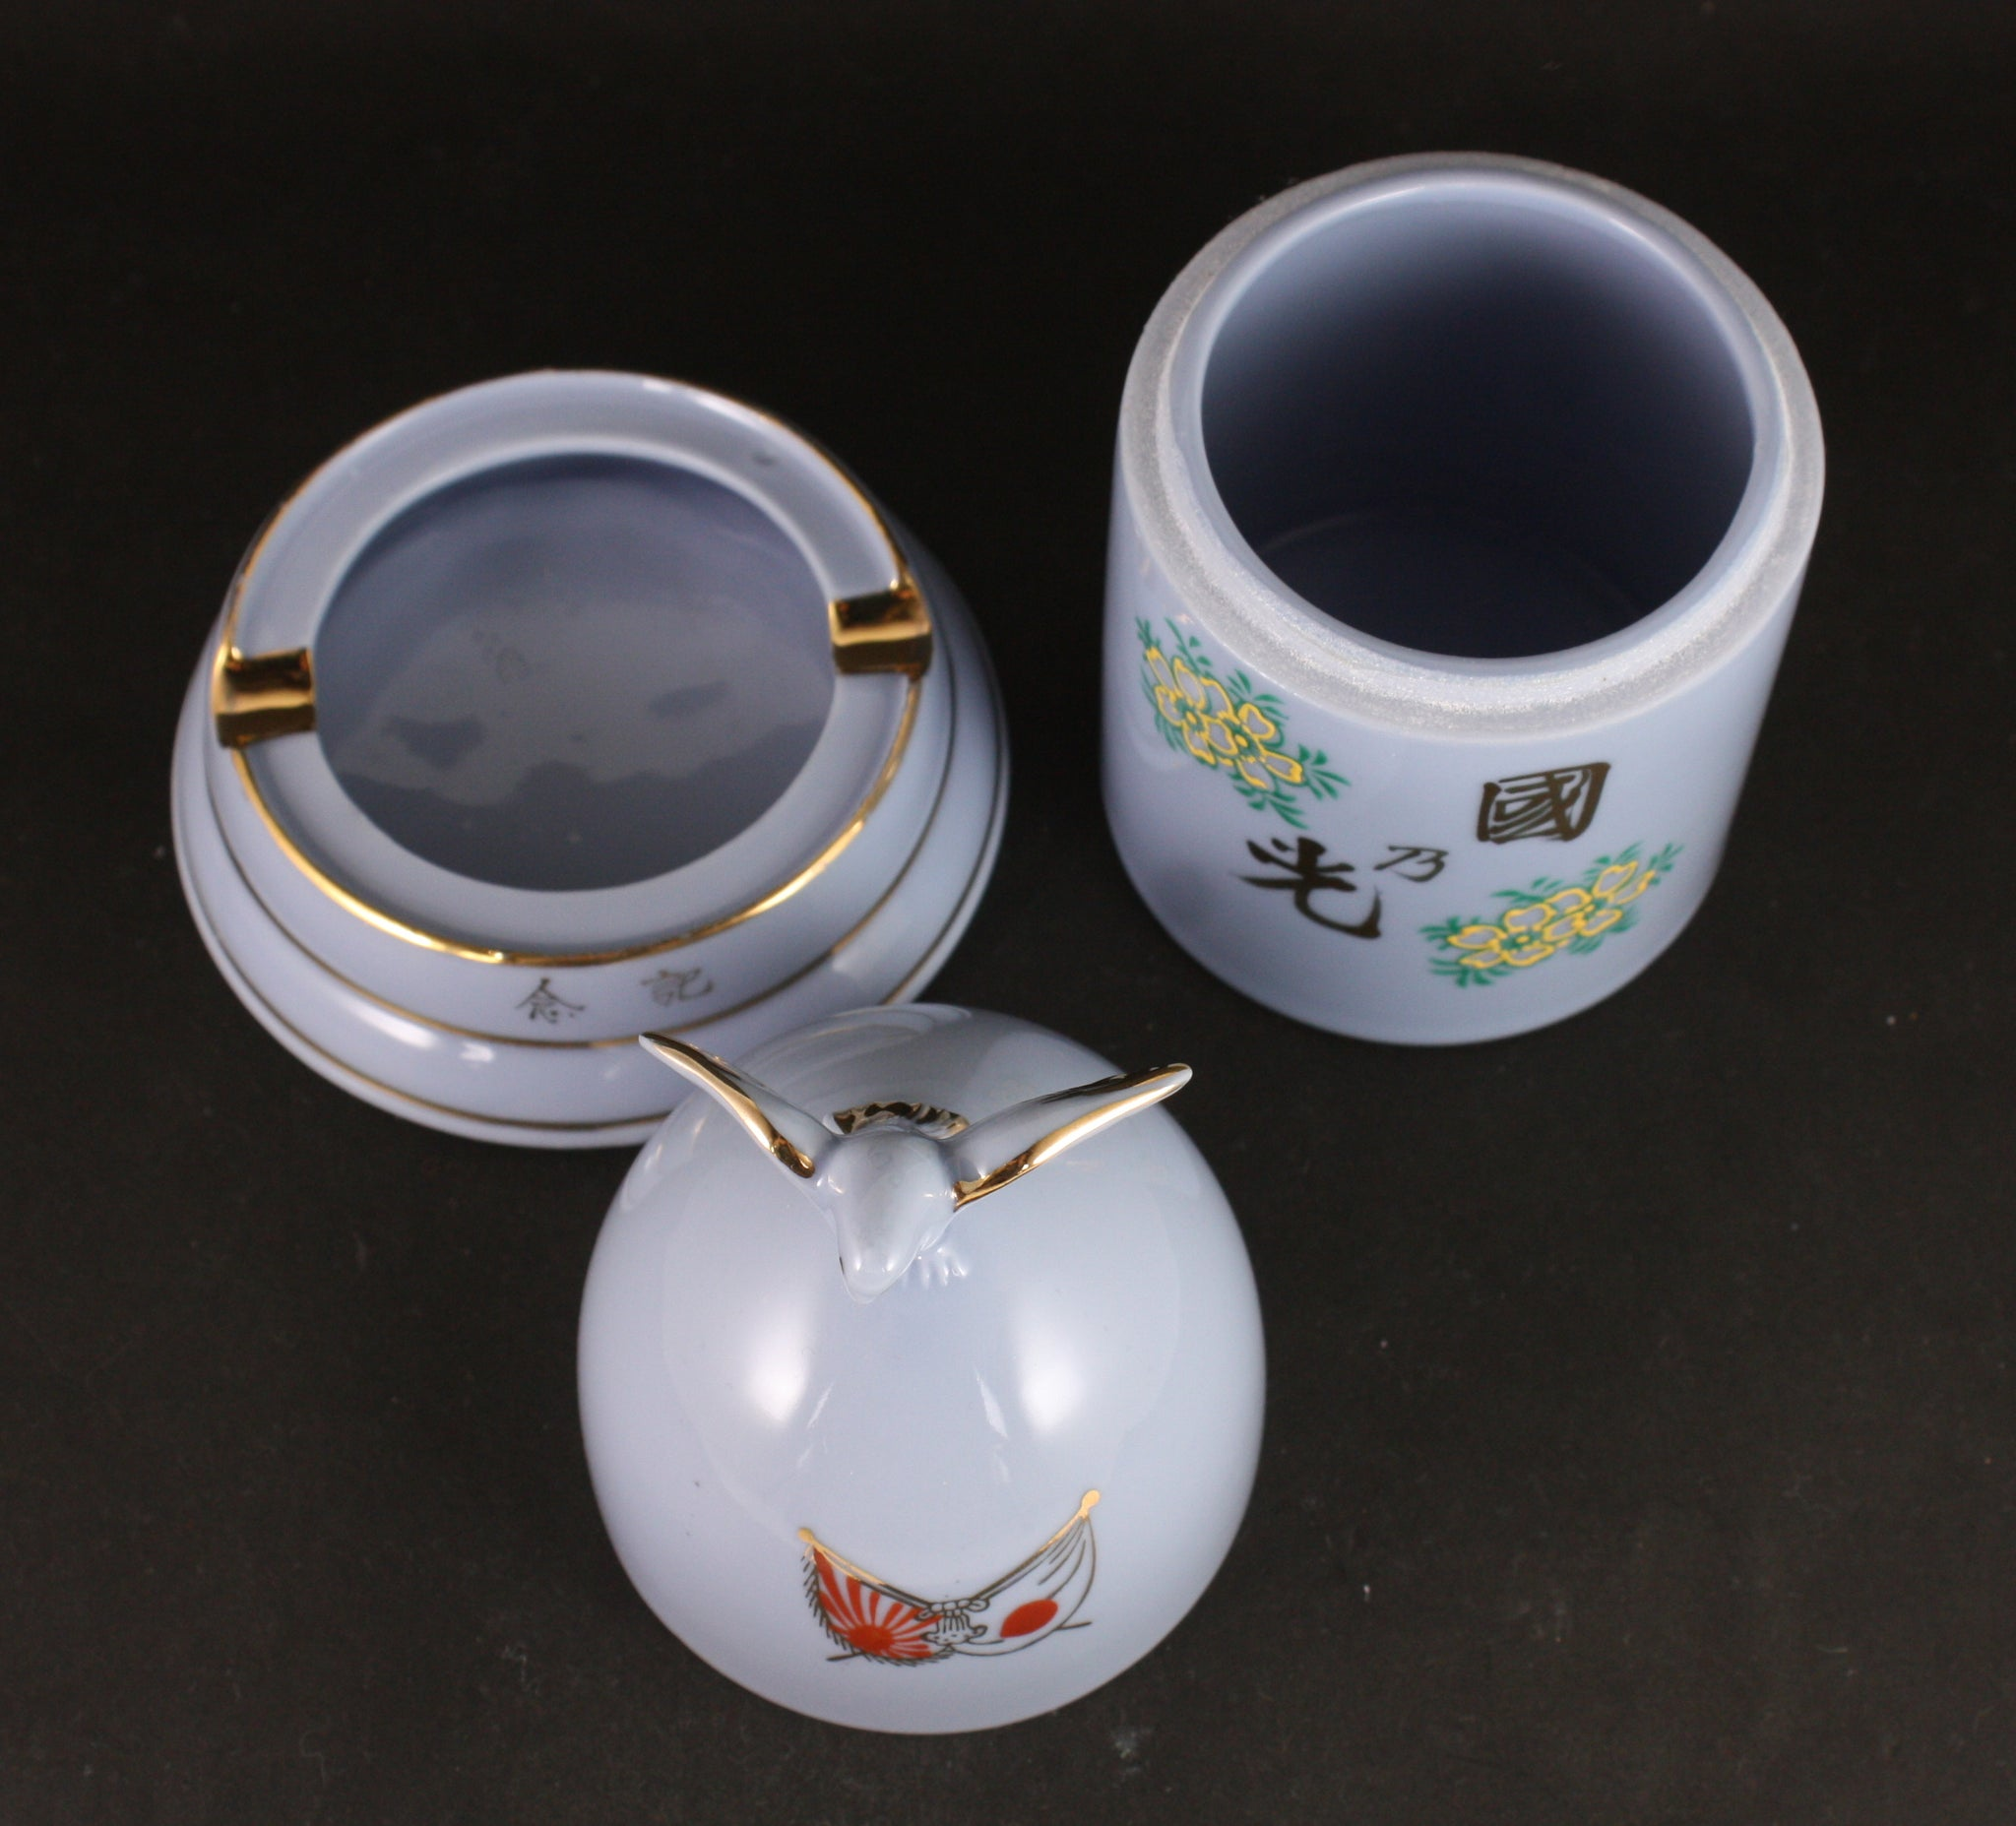 Very Rare Antique Japanese Military Shell Shaped Tobacco Container and Ashtray Set